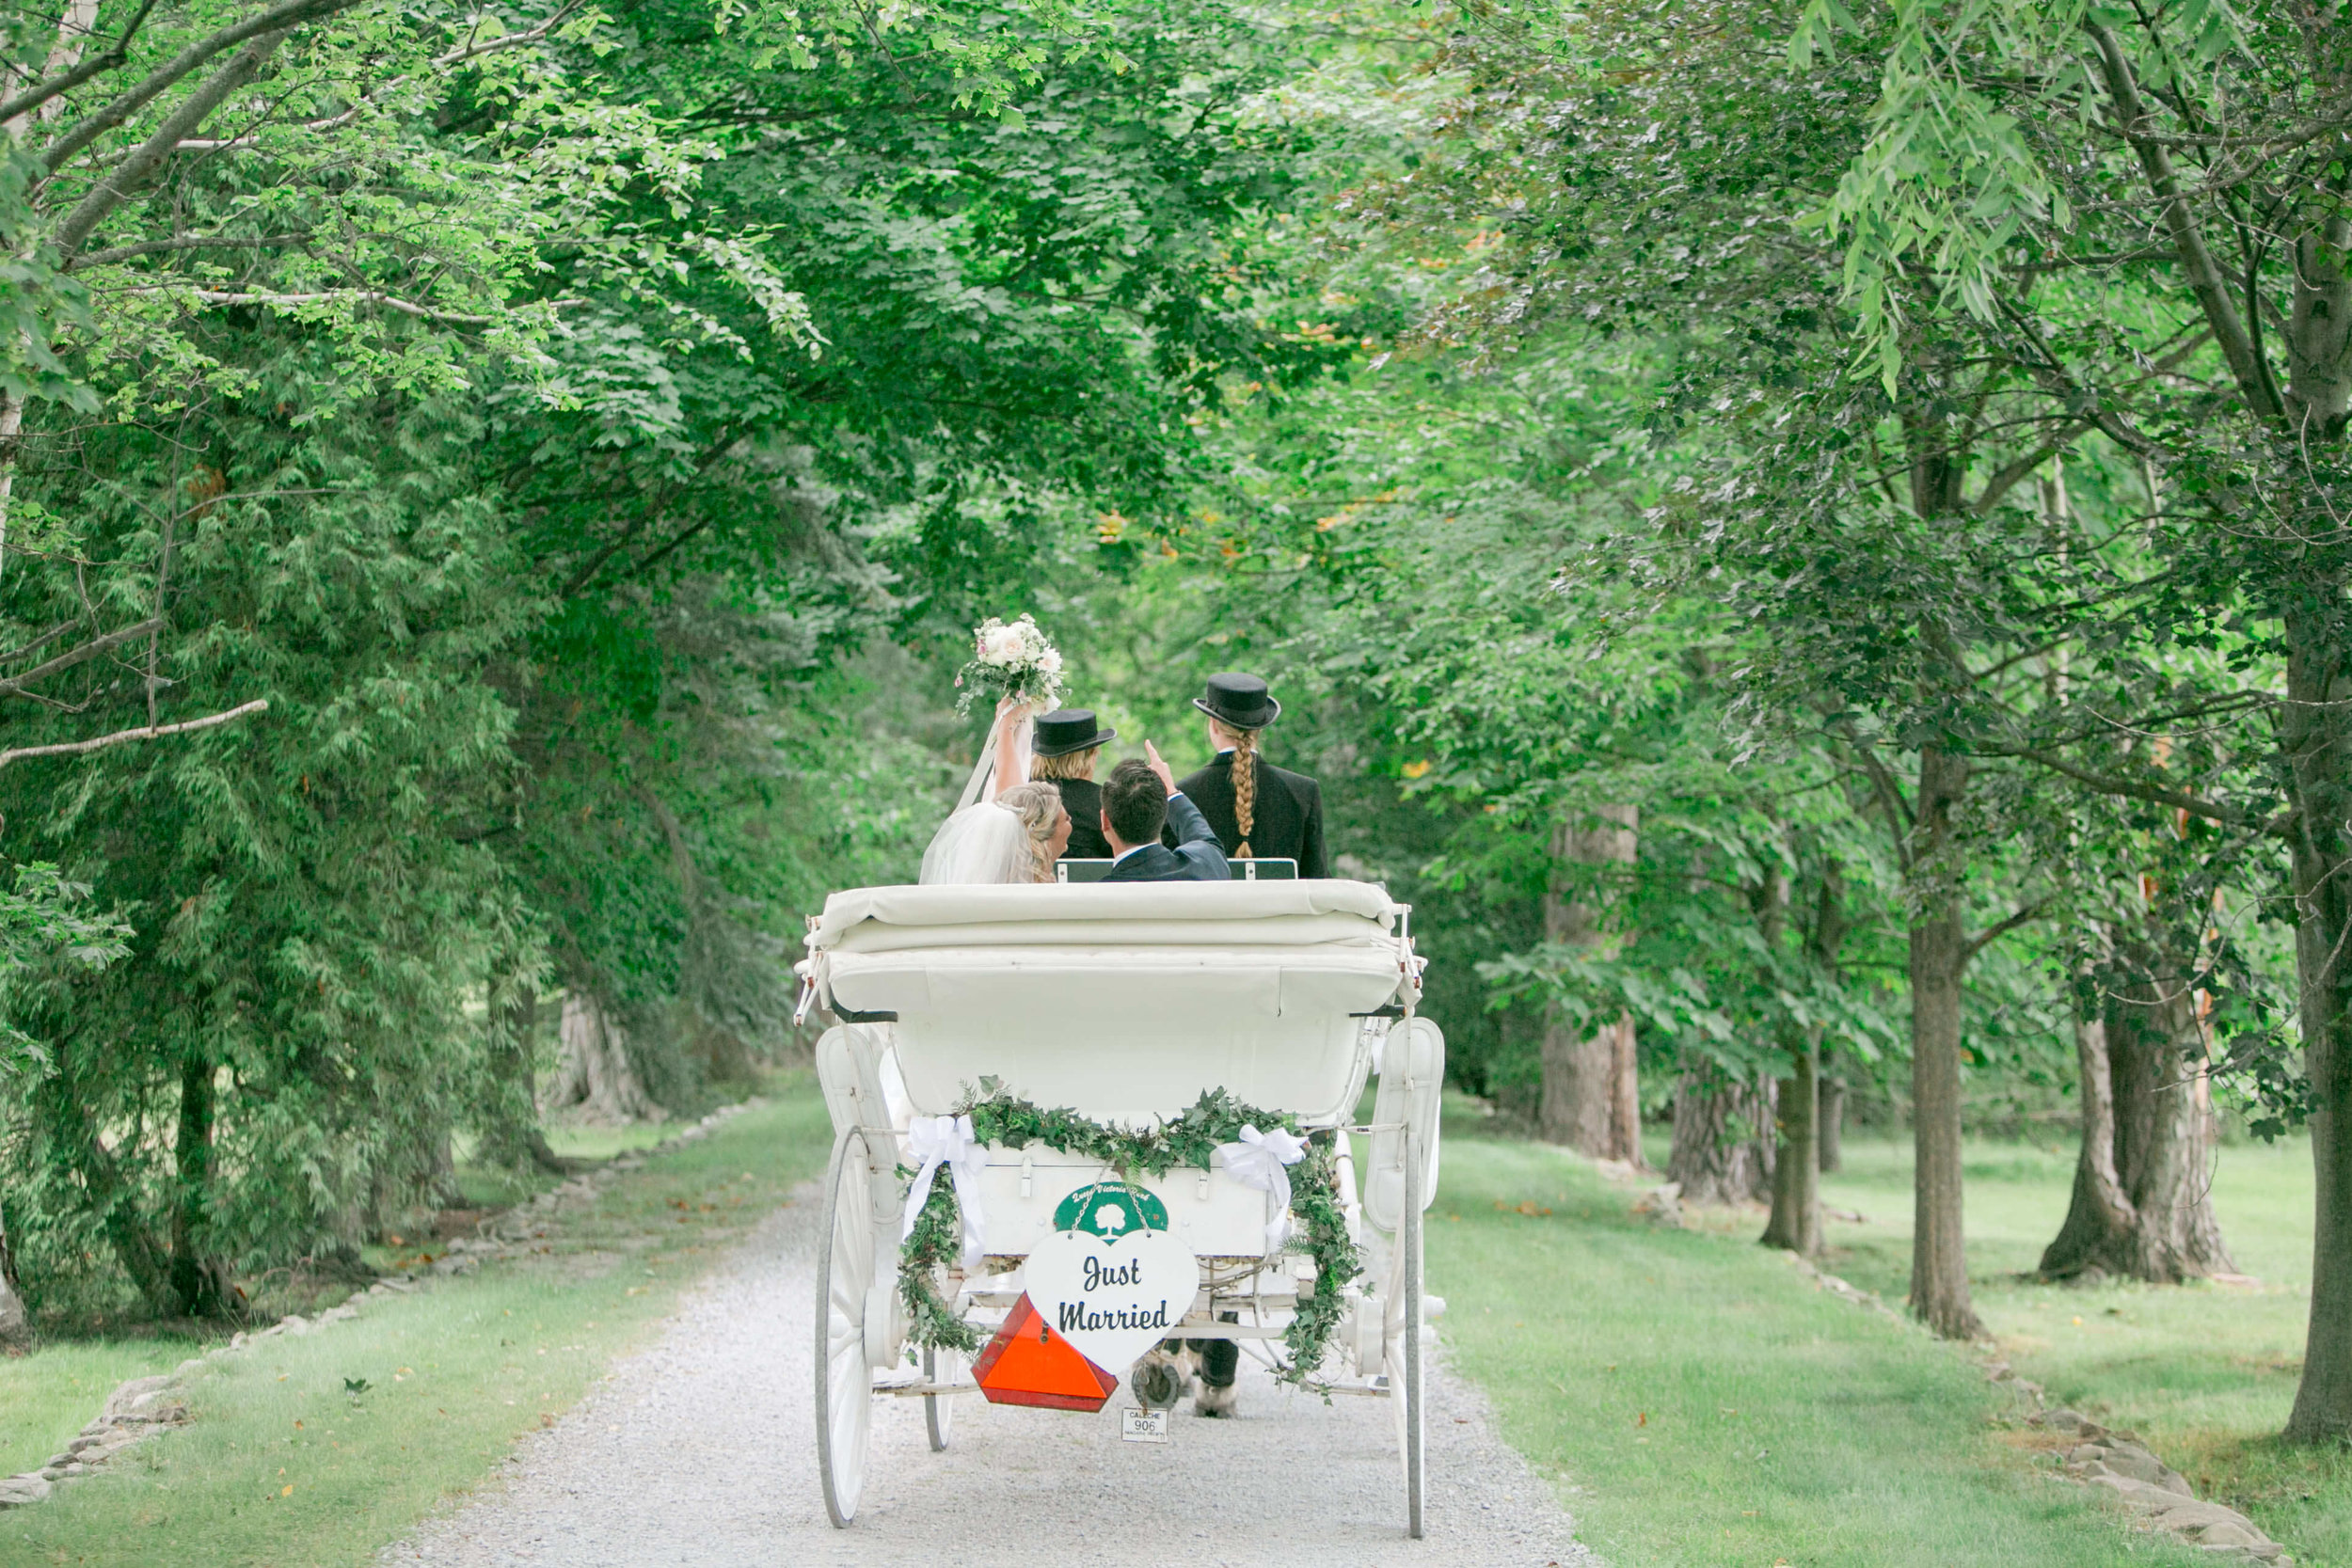 Ashley___Zac___Daniel_Ricci_Weddings___High_Res._Finals_445.jpg